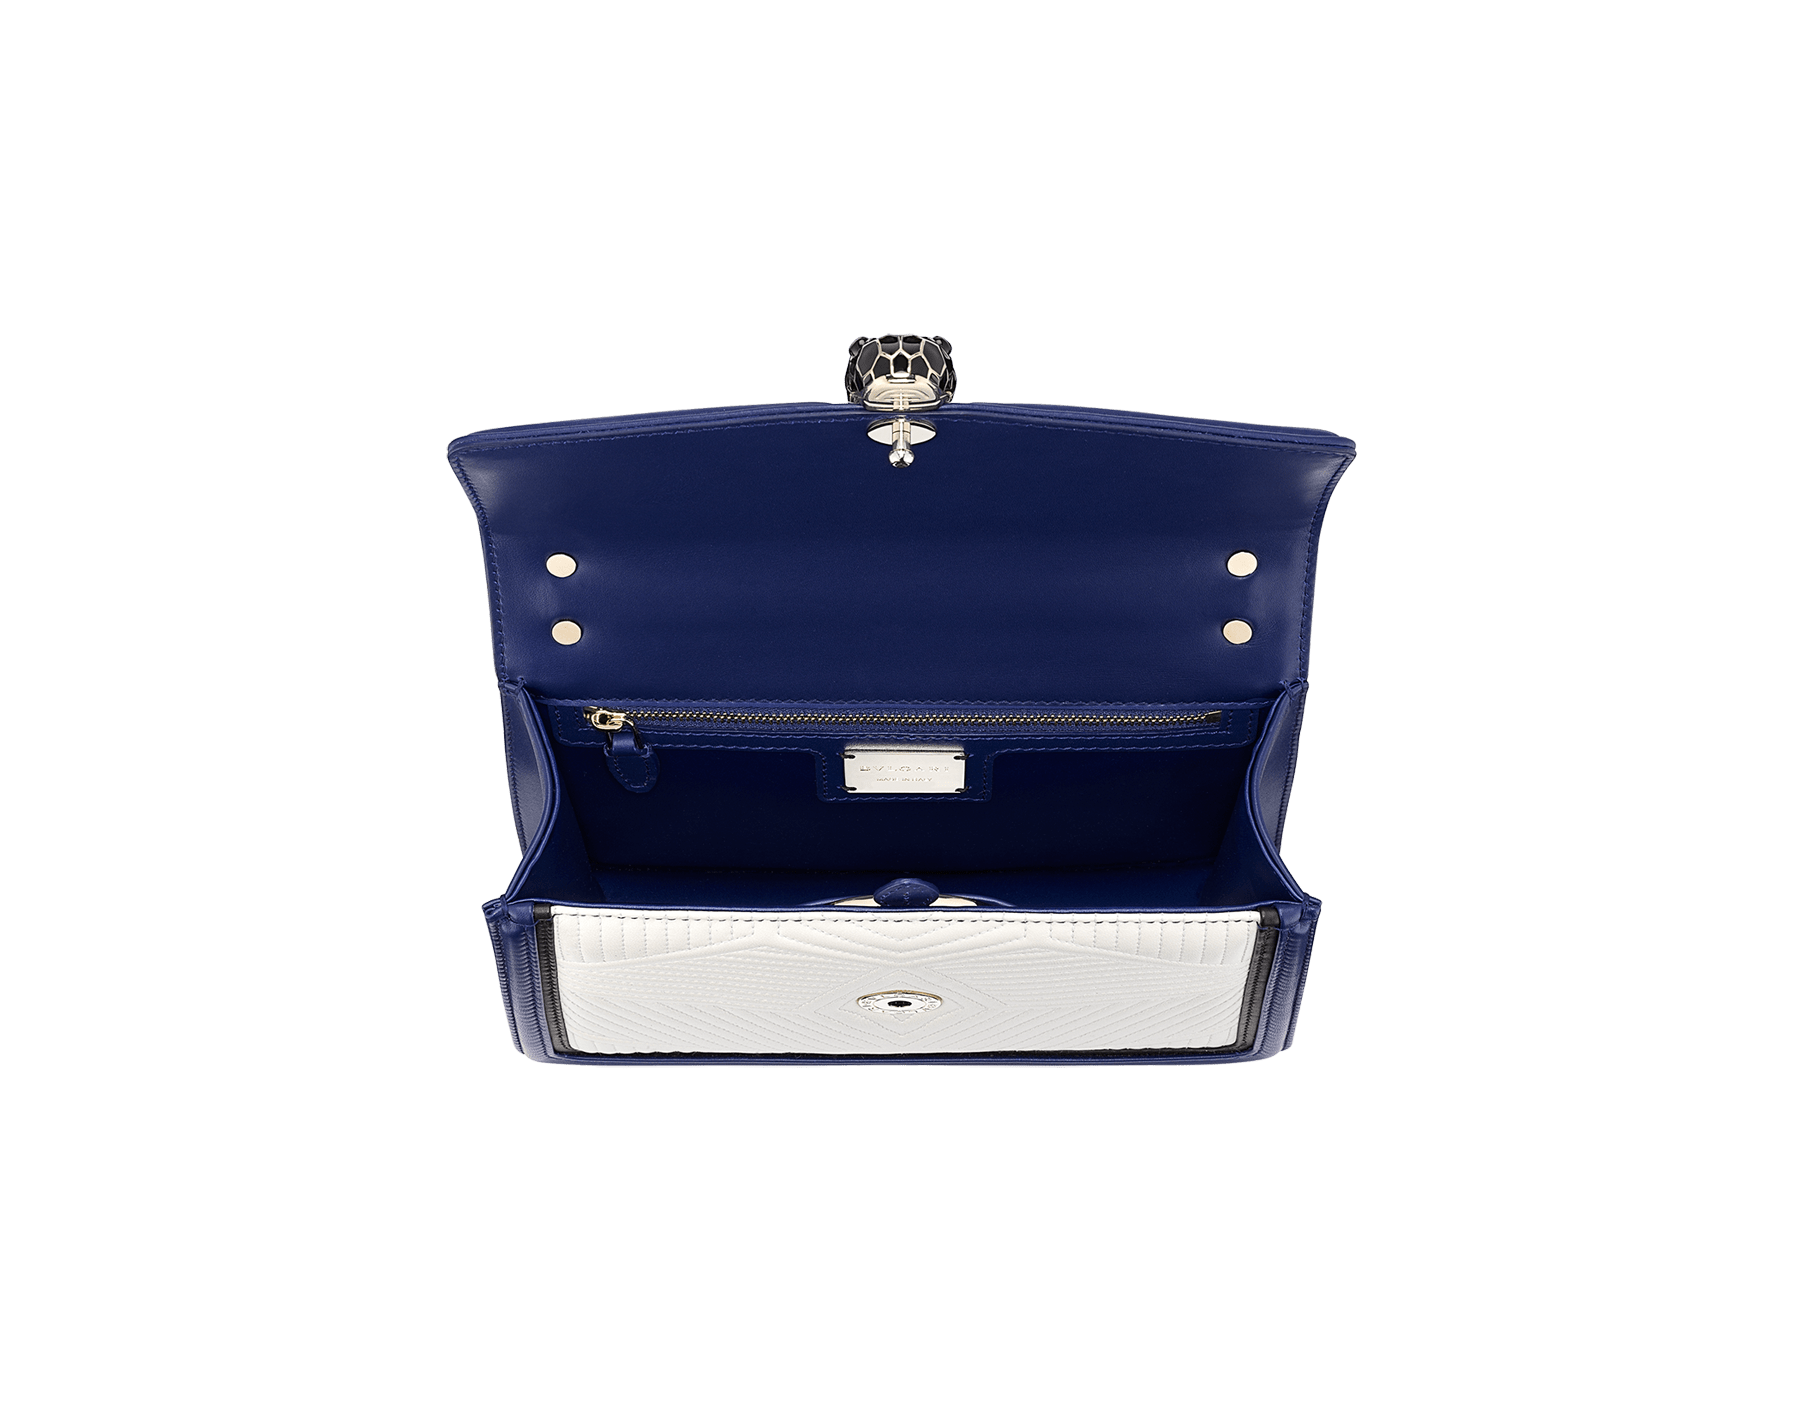 """Serpenti Diamond Blast"" shoulder bag in quilted, agate-white nappa leather with Royal Sapphire blue and black calfskin edging and Royal Sapphire blue nappa leather inner lining. Iconic snakehead closure in light gold-plated brass embellished with black and agate-white enamel and black onyx eyes. 922-FQDb image 3"